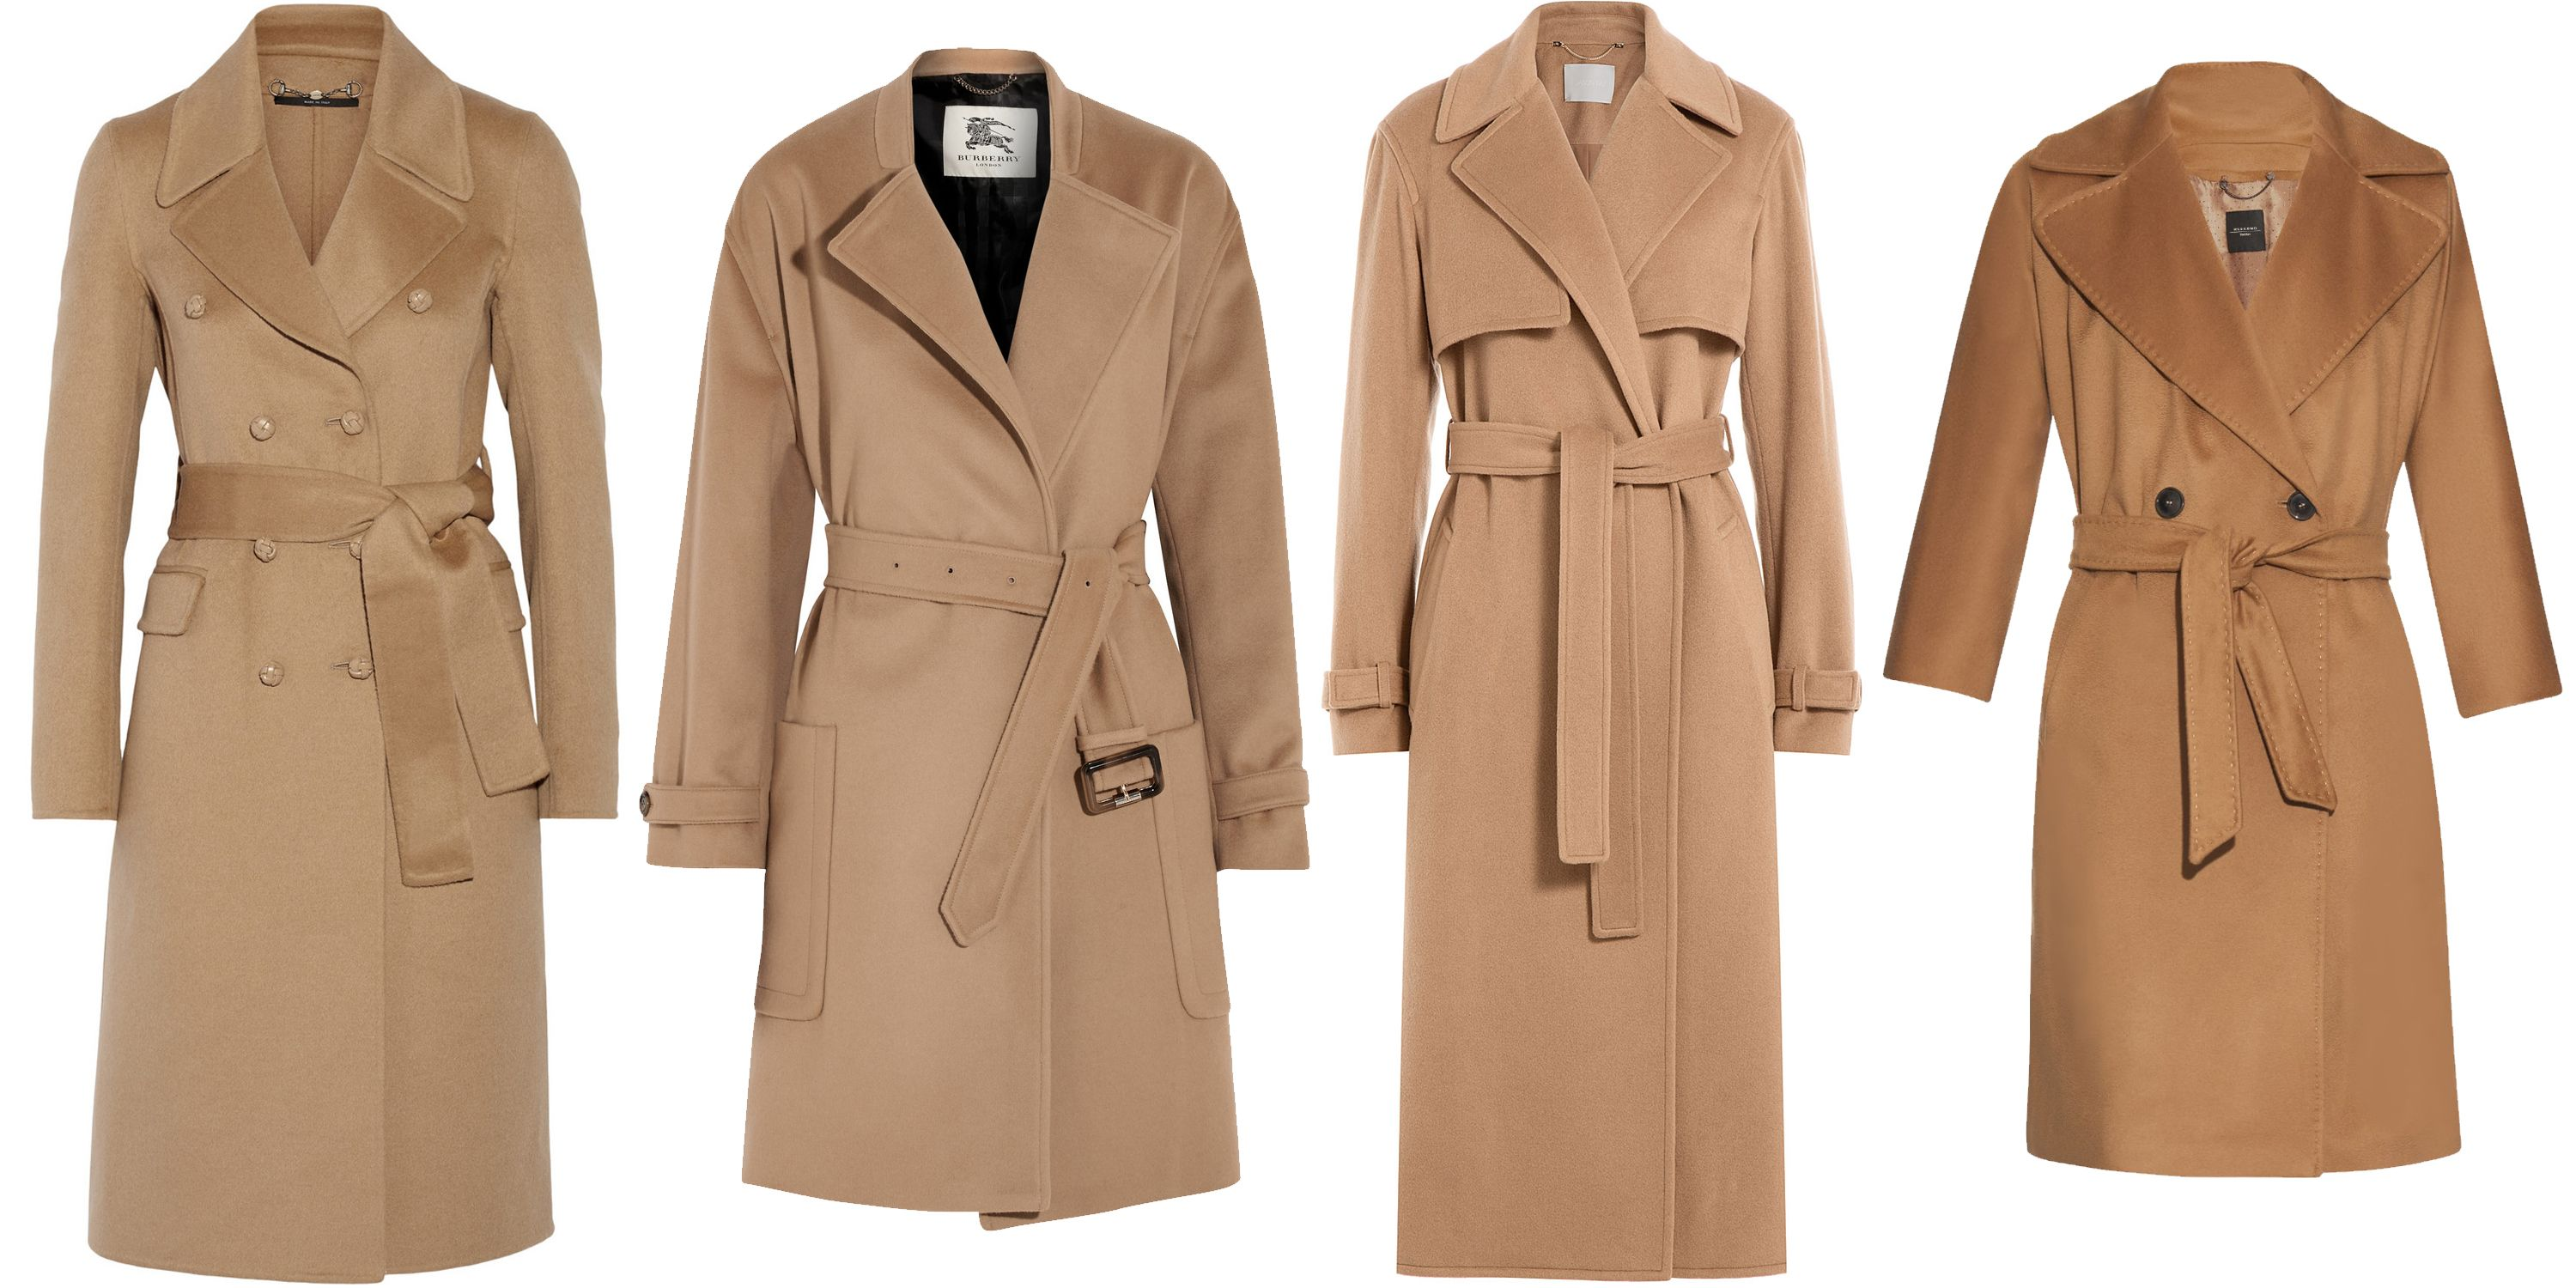 "<p>Get certified in the art of looking pulled-together. </p><p><em>Gucci trench coat, $2,919, <a href=""http://www.matchesfashion.com/us/products/1016262?country=USA&qxjkl=tsid:57534&utm_medium=Affiliate&utm_source=polyvore.com&utm_campaign=coats"" target=""_blank"">matchesfashion.com</a>; Burberry London coat, $1,595, <a href=""http://Burberry.com "" target=""_blank"">burberry.com</a>; Jason Wu coat, $3,995, </em><a href=""http://www.stylebop.com/product_details.php?id=637426&tmad=c&tmcampid=230&partner=polyvore&campaign=affiliate/polyvore/usa/&utm_source=affiliate&utm_medium=polyvore_us&utm_campaign=polyvore_%7BJason+Wu%7D_%7BLong+Coat%7D_%7B233670%7D&cpkey=qLRrIz5Z4exERoNq7pZd7s9qCq4AK68NAUWietBdEPo"" target=""_blank"">stylebob.com</a><em>; Weekend Max Mara coat, $1,075, </em><span></span><a href=""http://www.matchesfashion.com/us/products/1025087?country=USA&qxjkl=tsid:57534&utm_medium=Affiliate&utm_source=polyvore.com&utm_campaign=coats#"" target=""_blank"">matches fashion.com</a>. </p>"